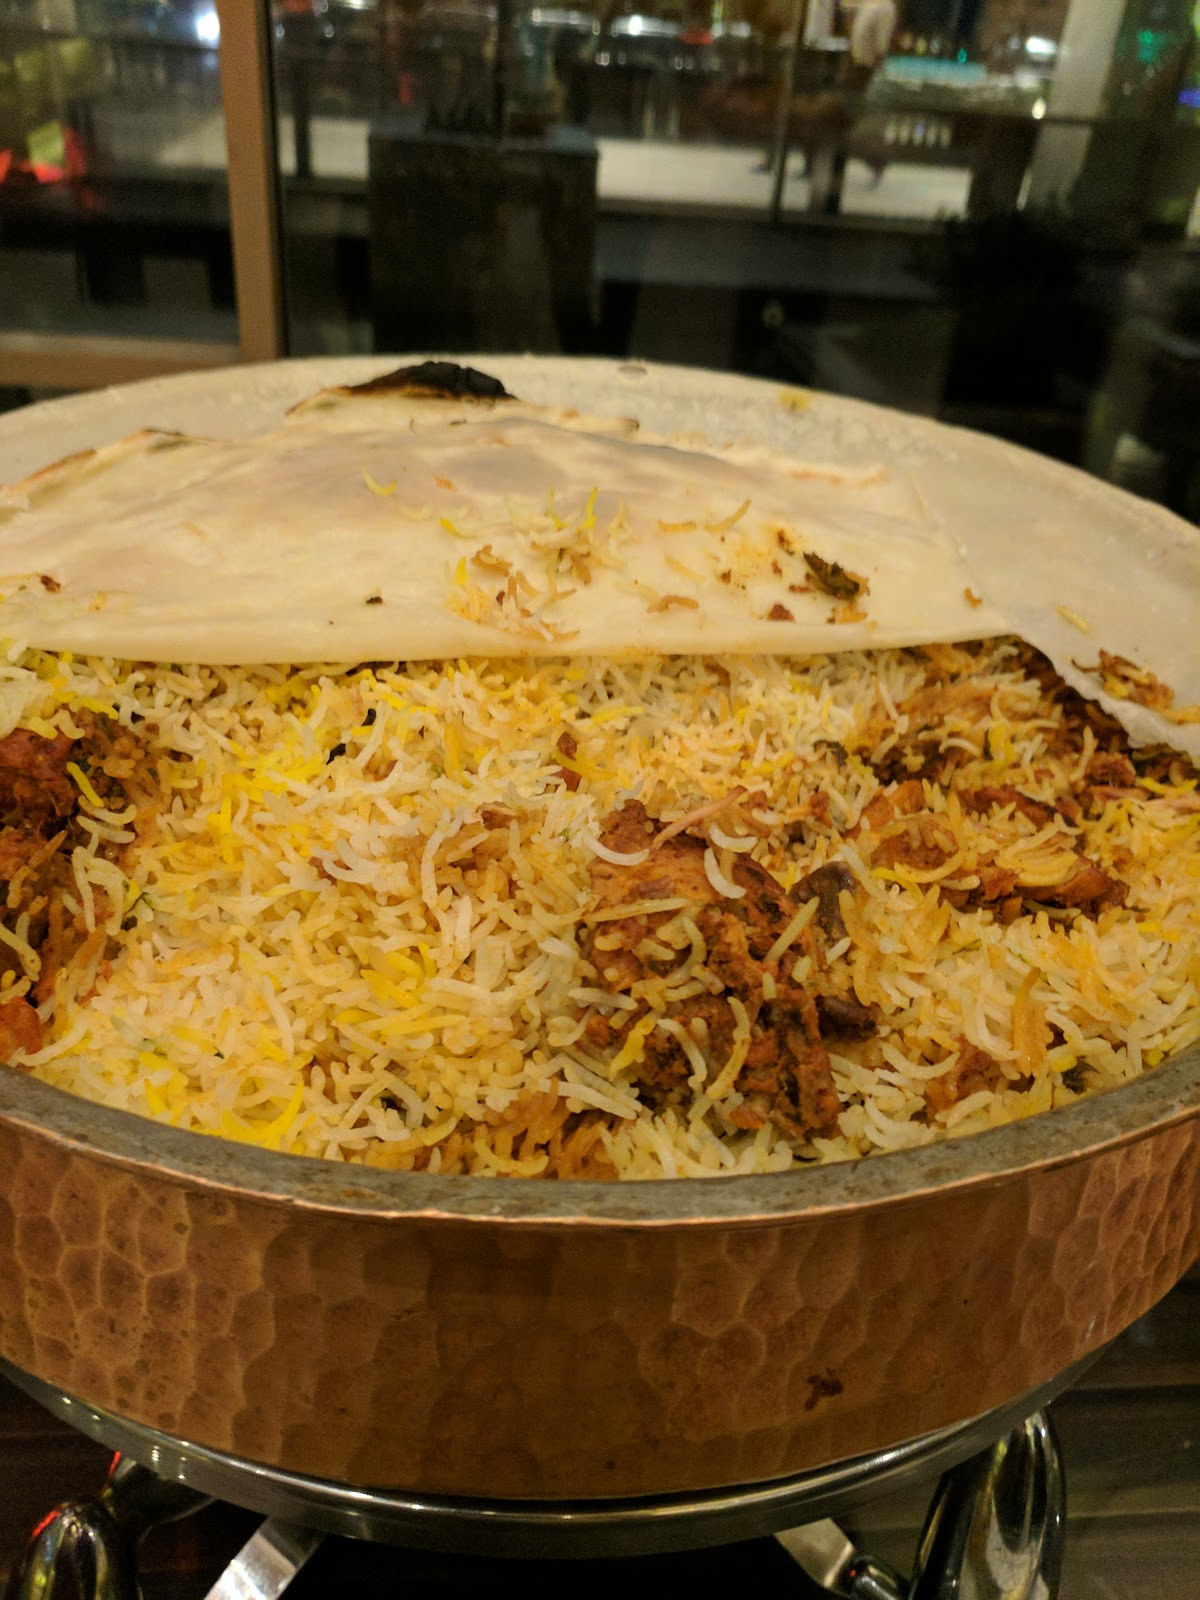 colour coated sheets in hyderabad : Purdah biryani because of the thin atta sheet that covers it as it cooks gently coaxing all the flavours to stay